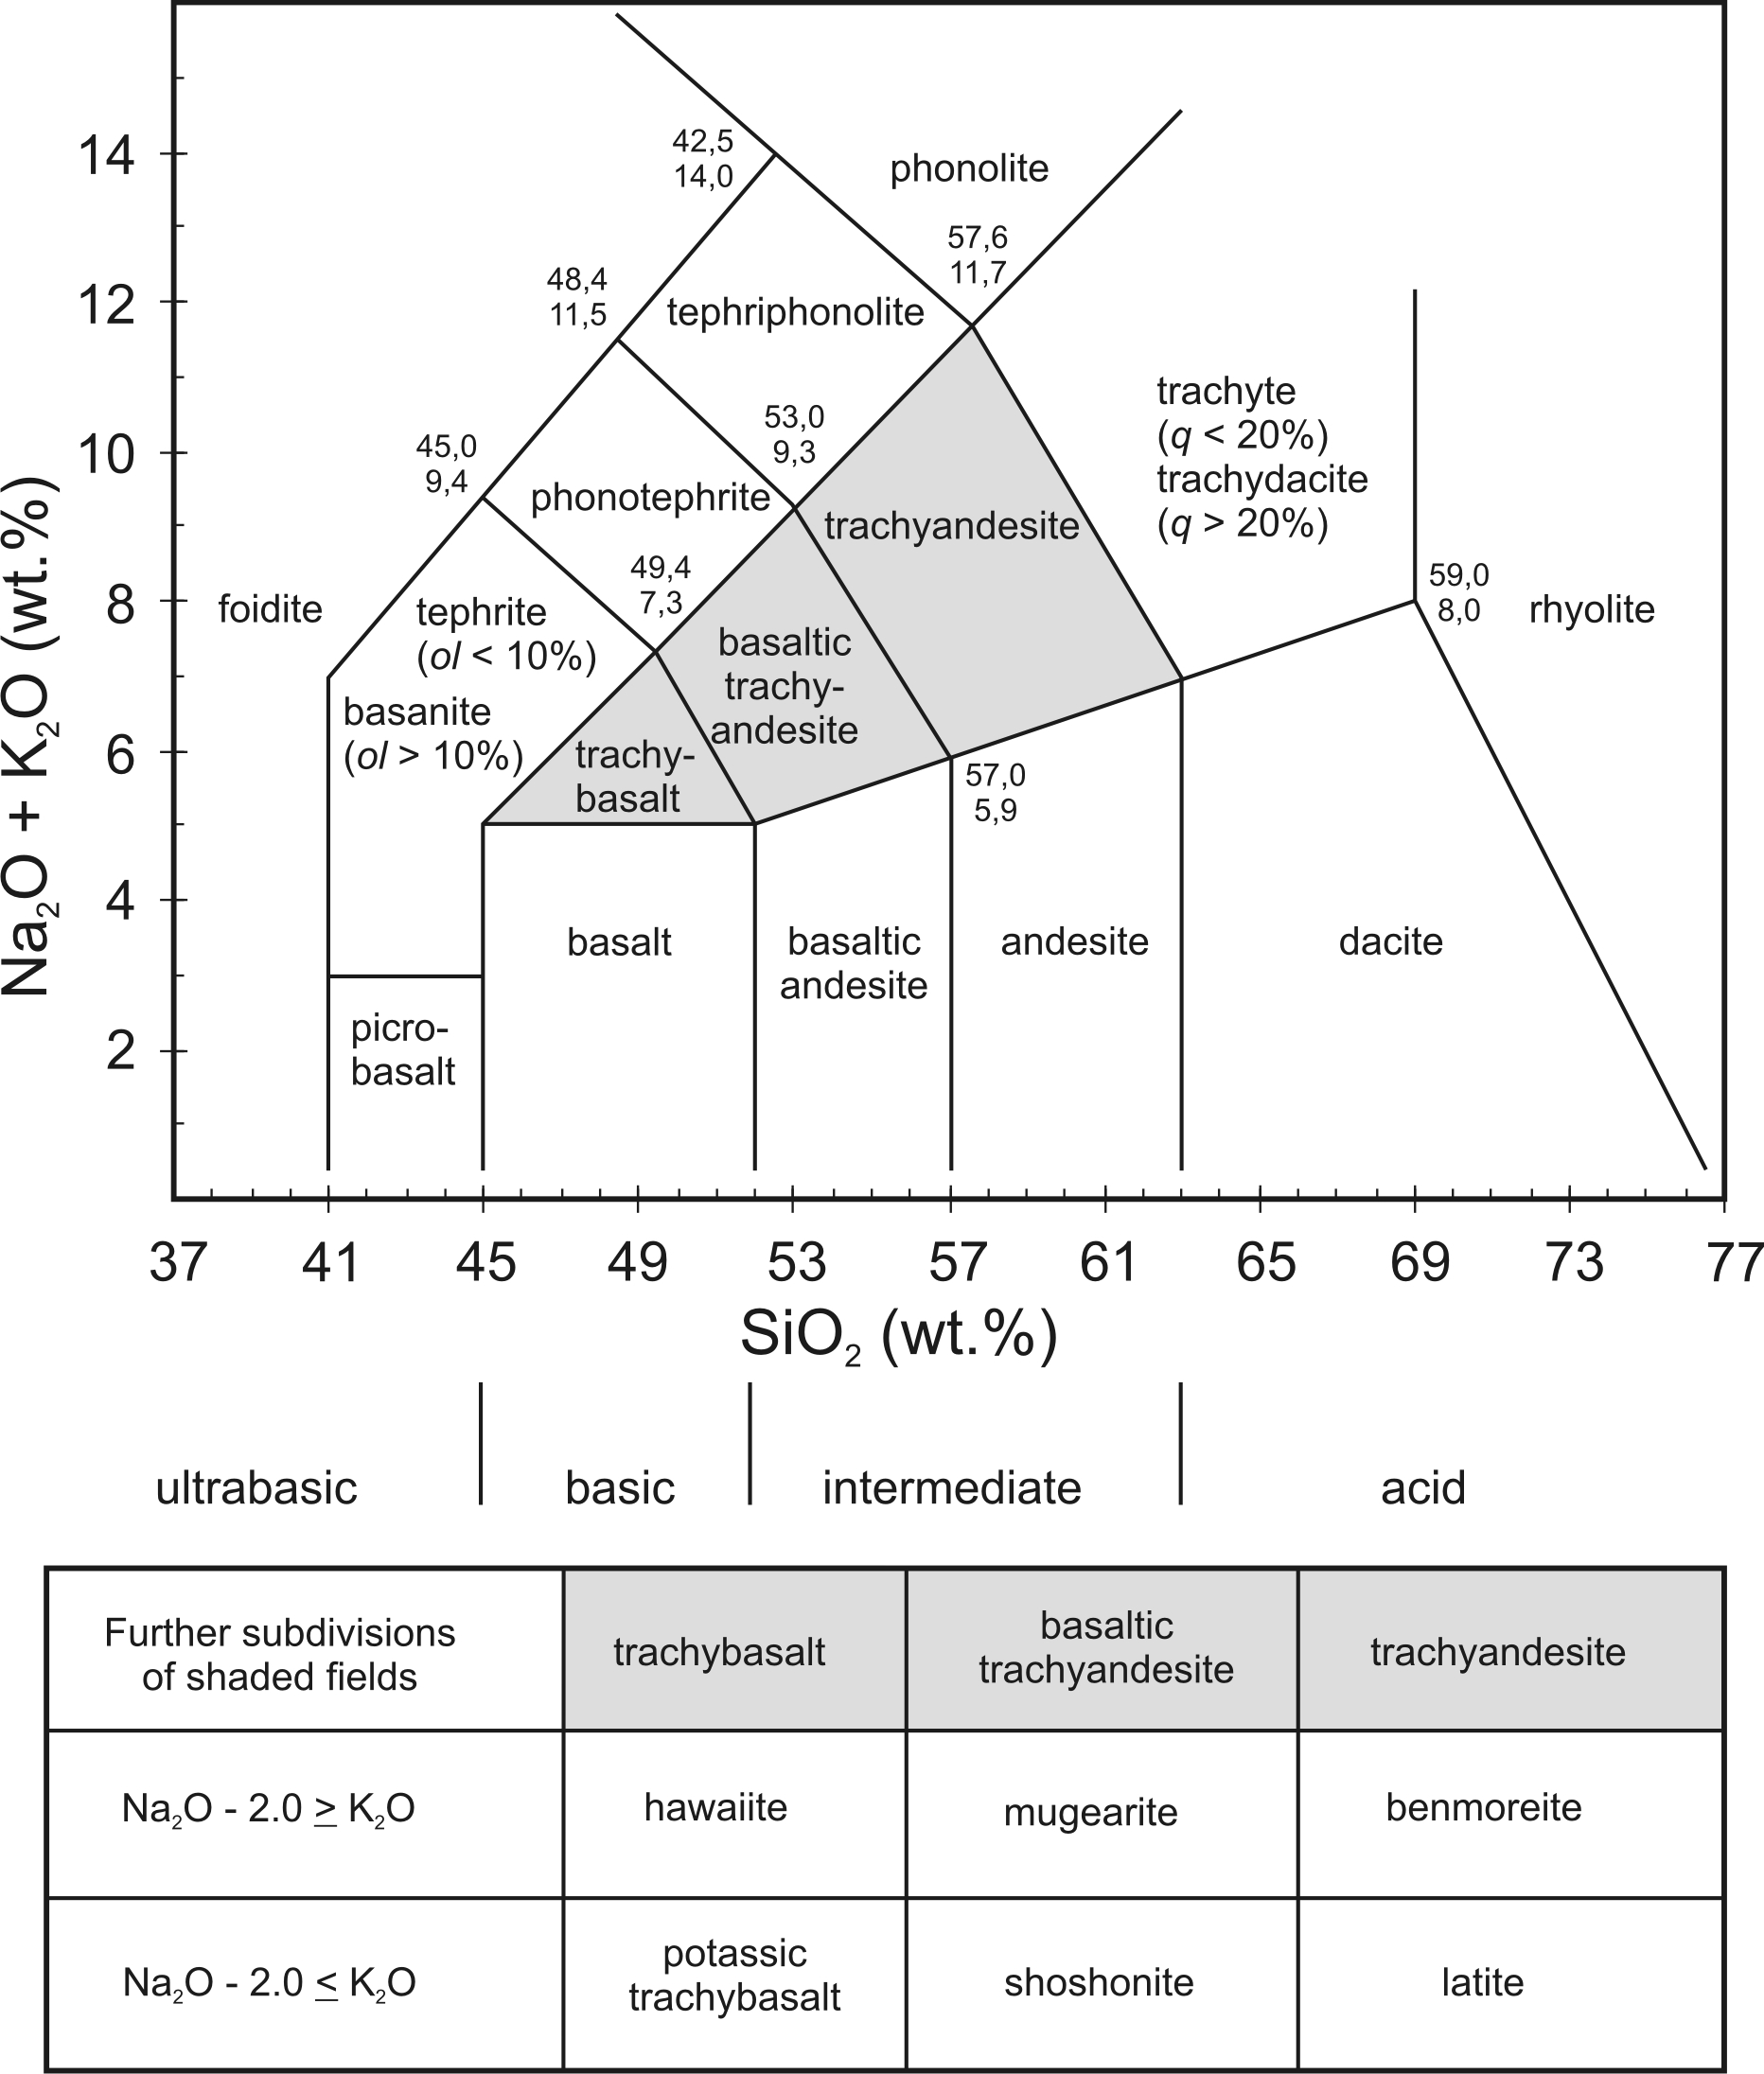 hight resolution of chemical classification of volcanic rocks based on the total alkali content na2o k2o in wt and sio2 lebas et al 1986 1992